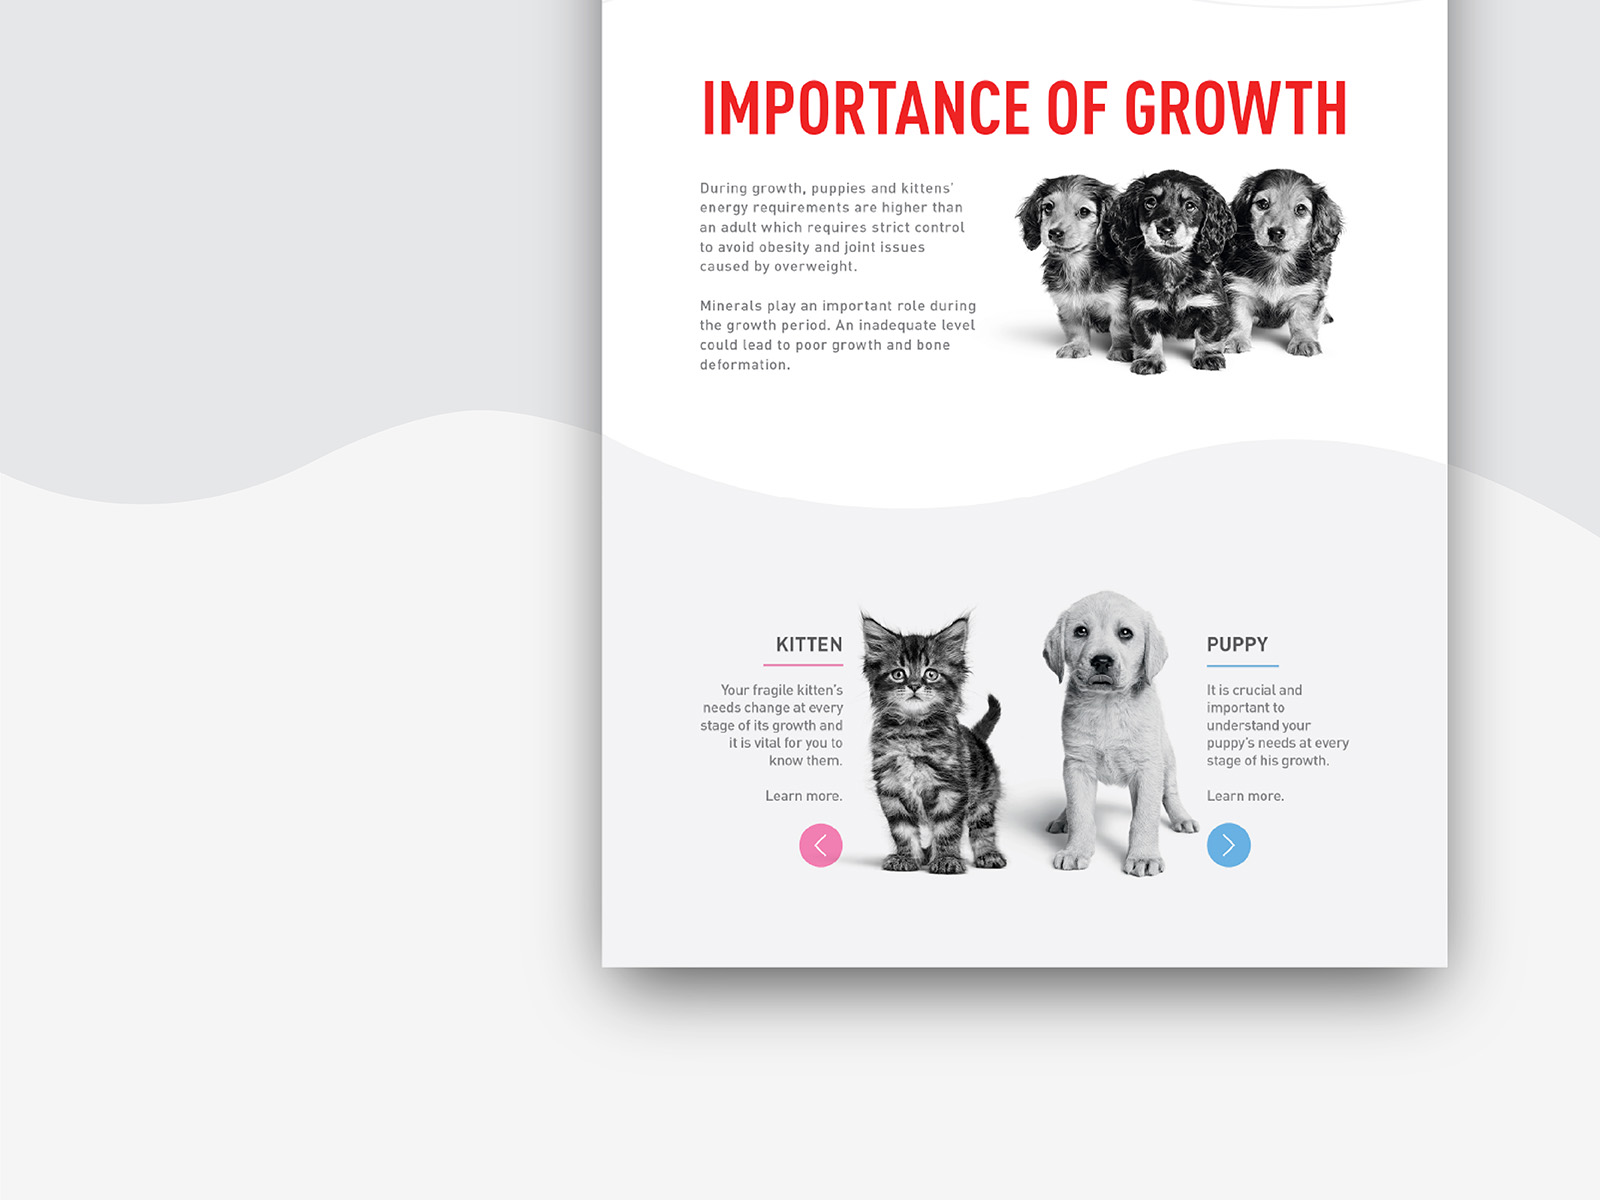 Royal Canin birth and growth campaign microsite landing page one scroll design highlights important factors of a kitten and puppy growth stage